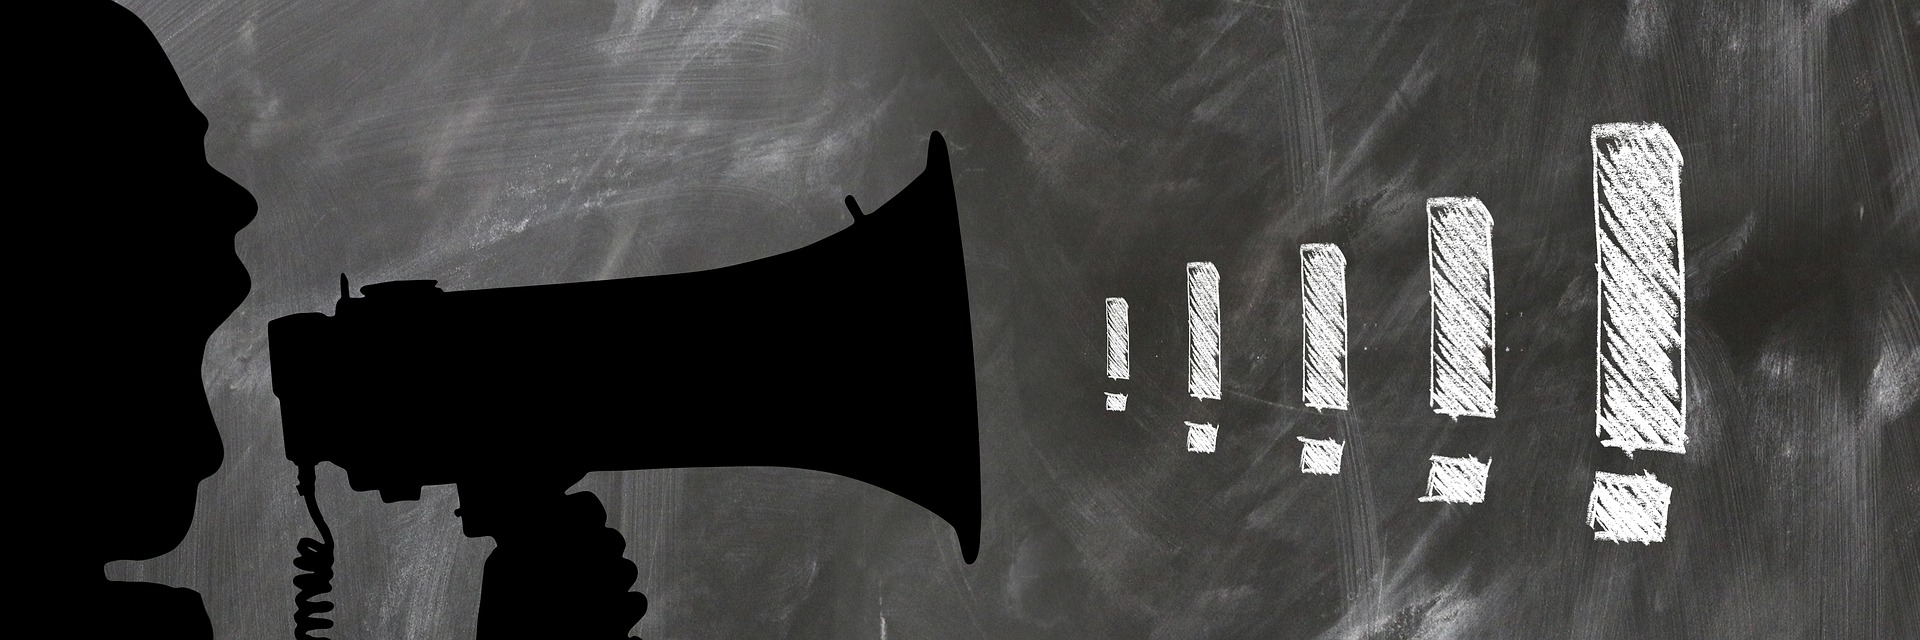 megaphone with exclamation points